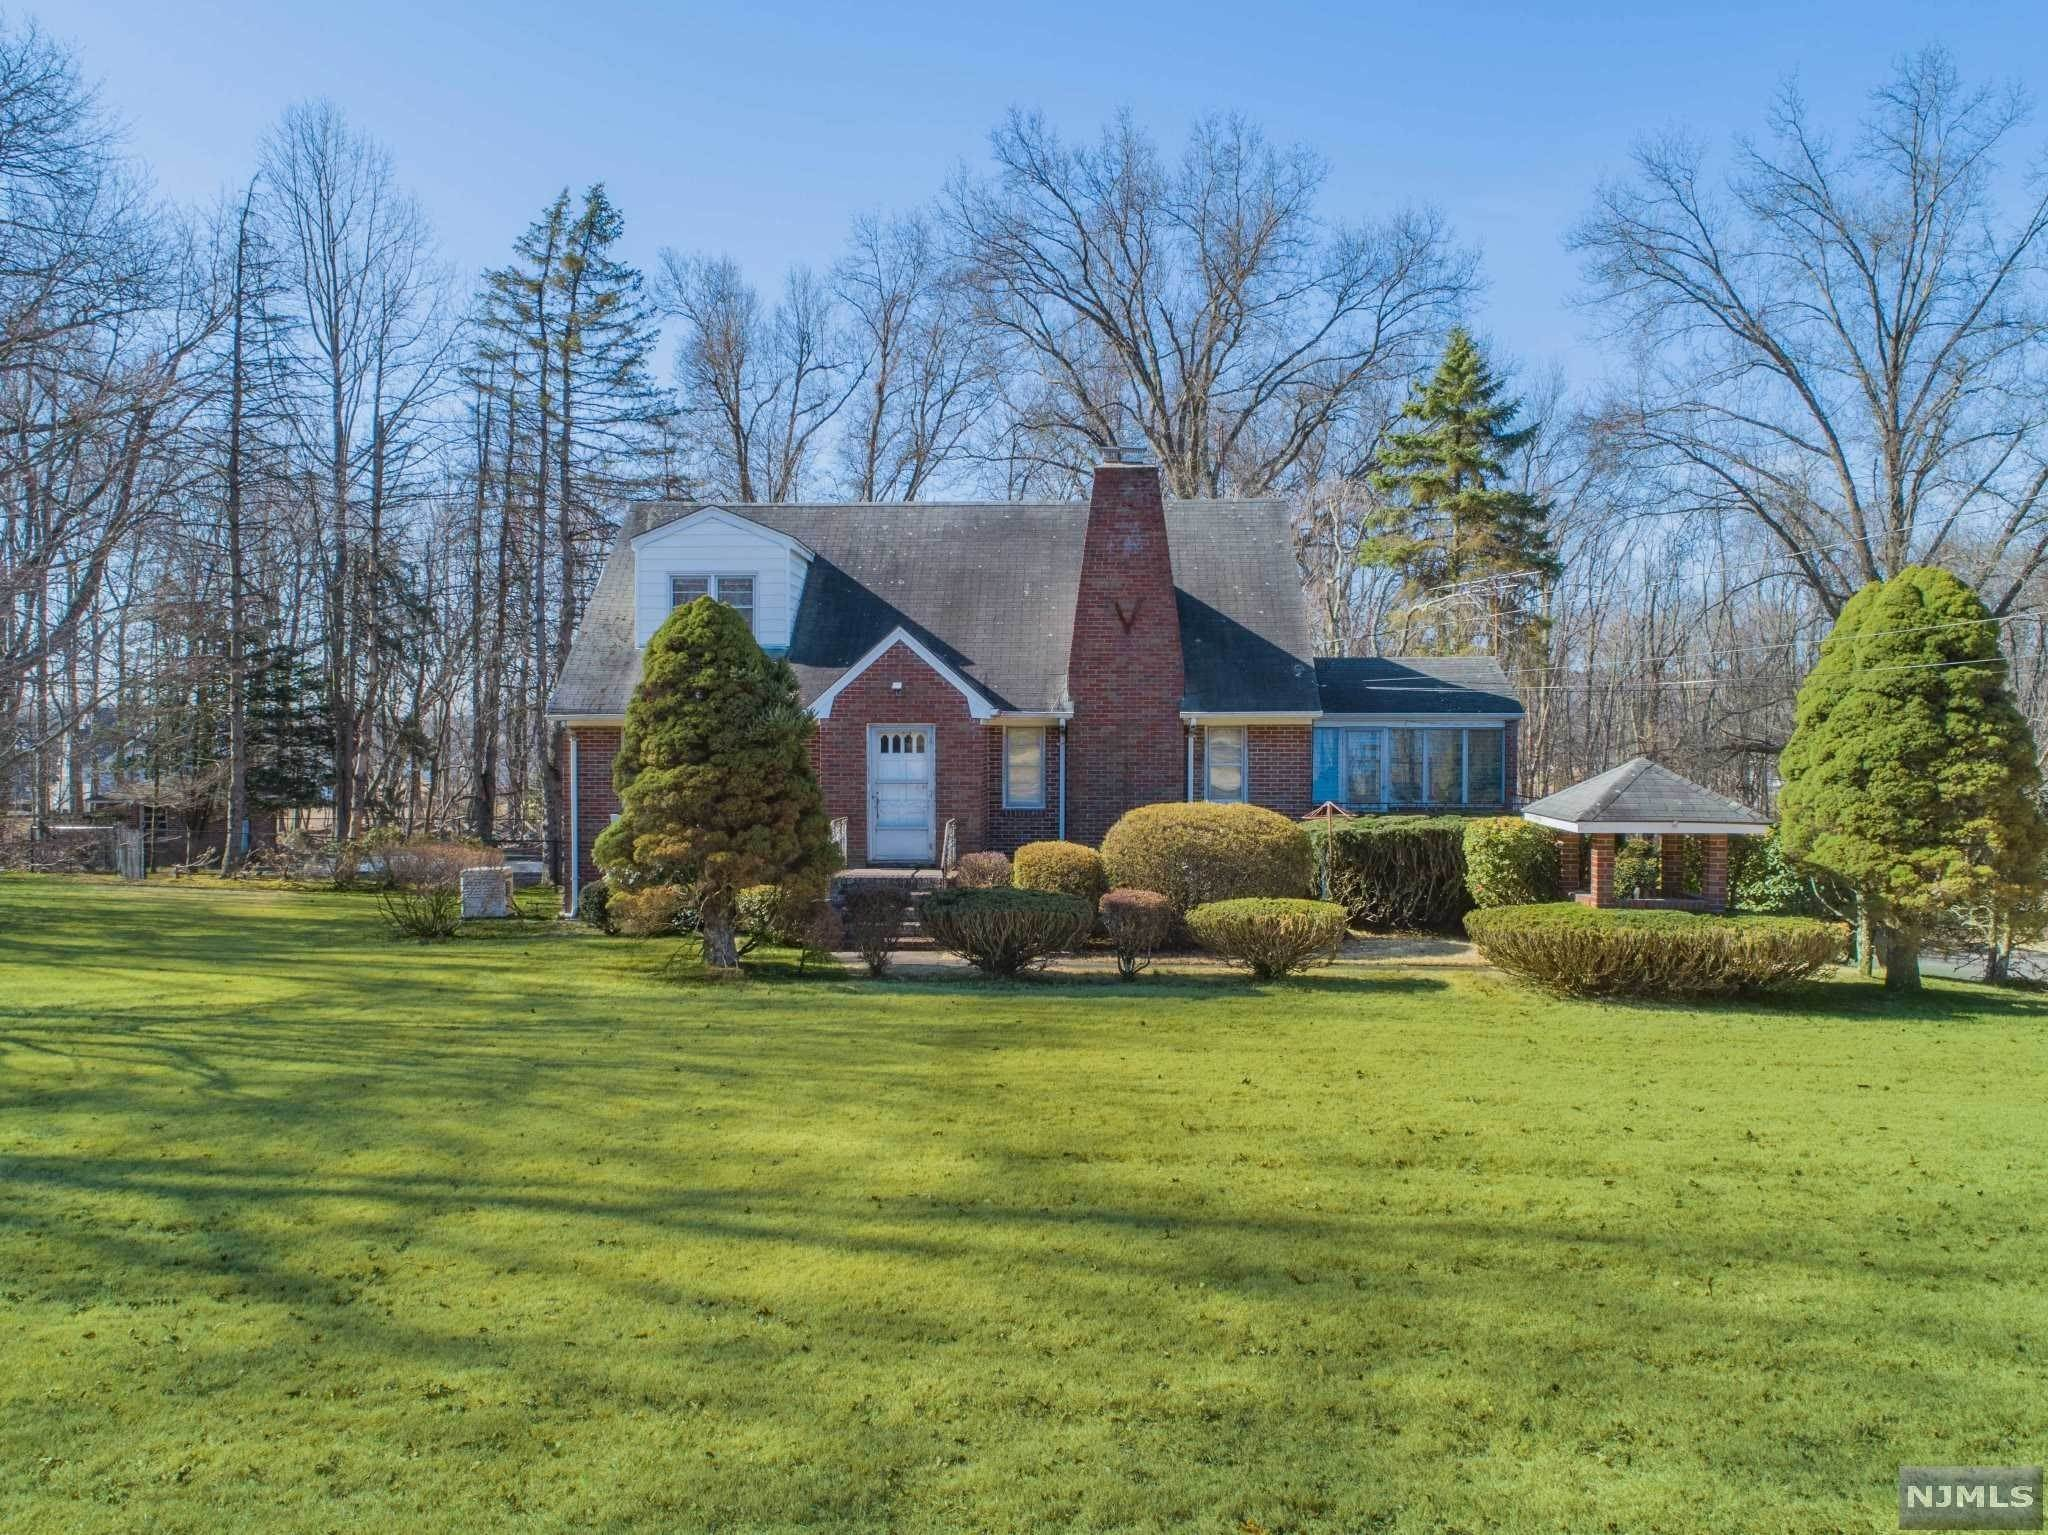 Single Family Home for Sale at 570 Franklin Lake Road Franklin Lakes, New Jersey, 07417 United States